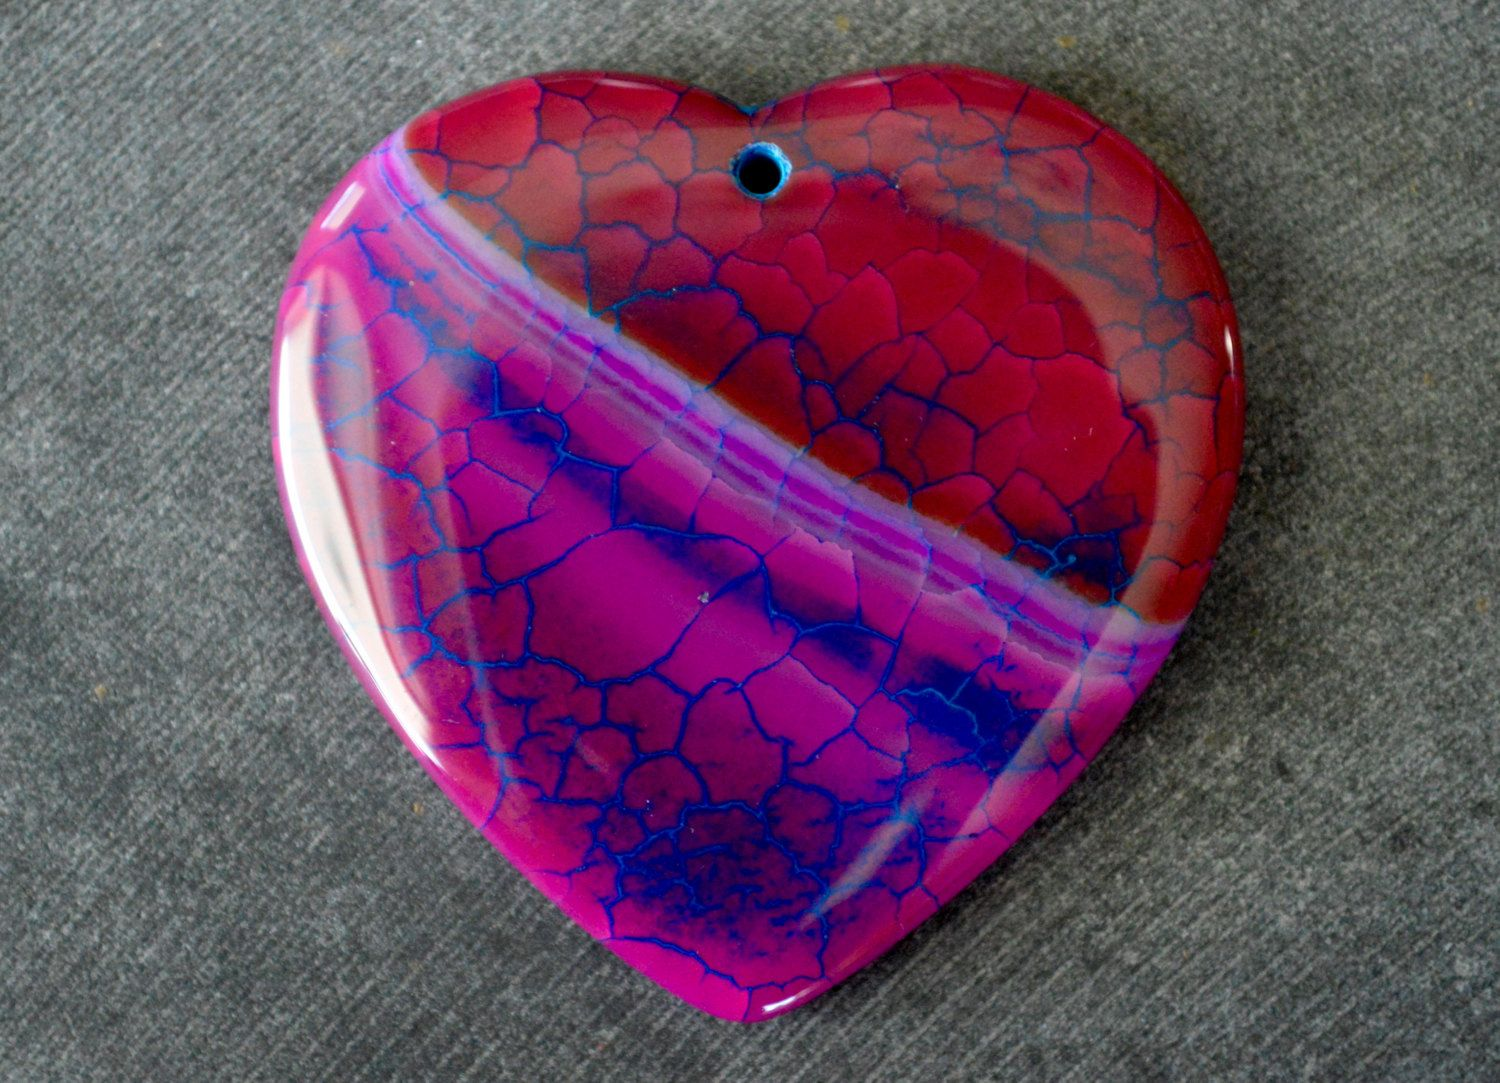 45mm Hot Pink Dragon Veins Agate Heart Stone Pendant, Stone Pendant, 45x45x7mm Natural Stone, Fire Agate Pendant by TheBeadBandit on Etsy